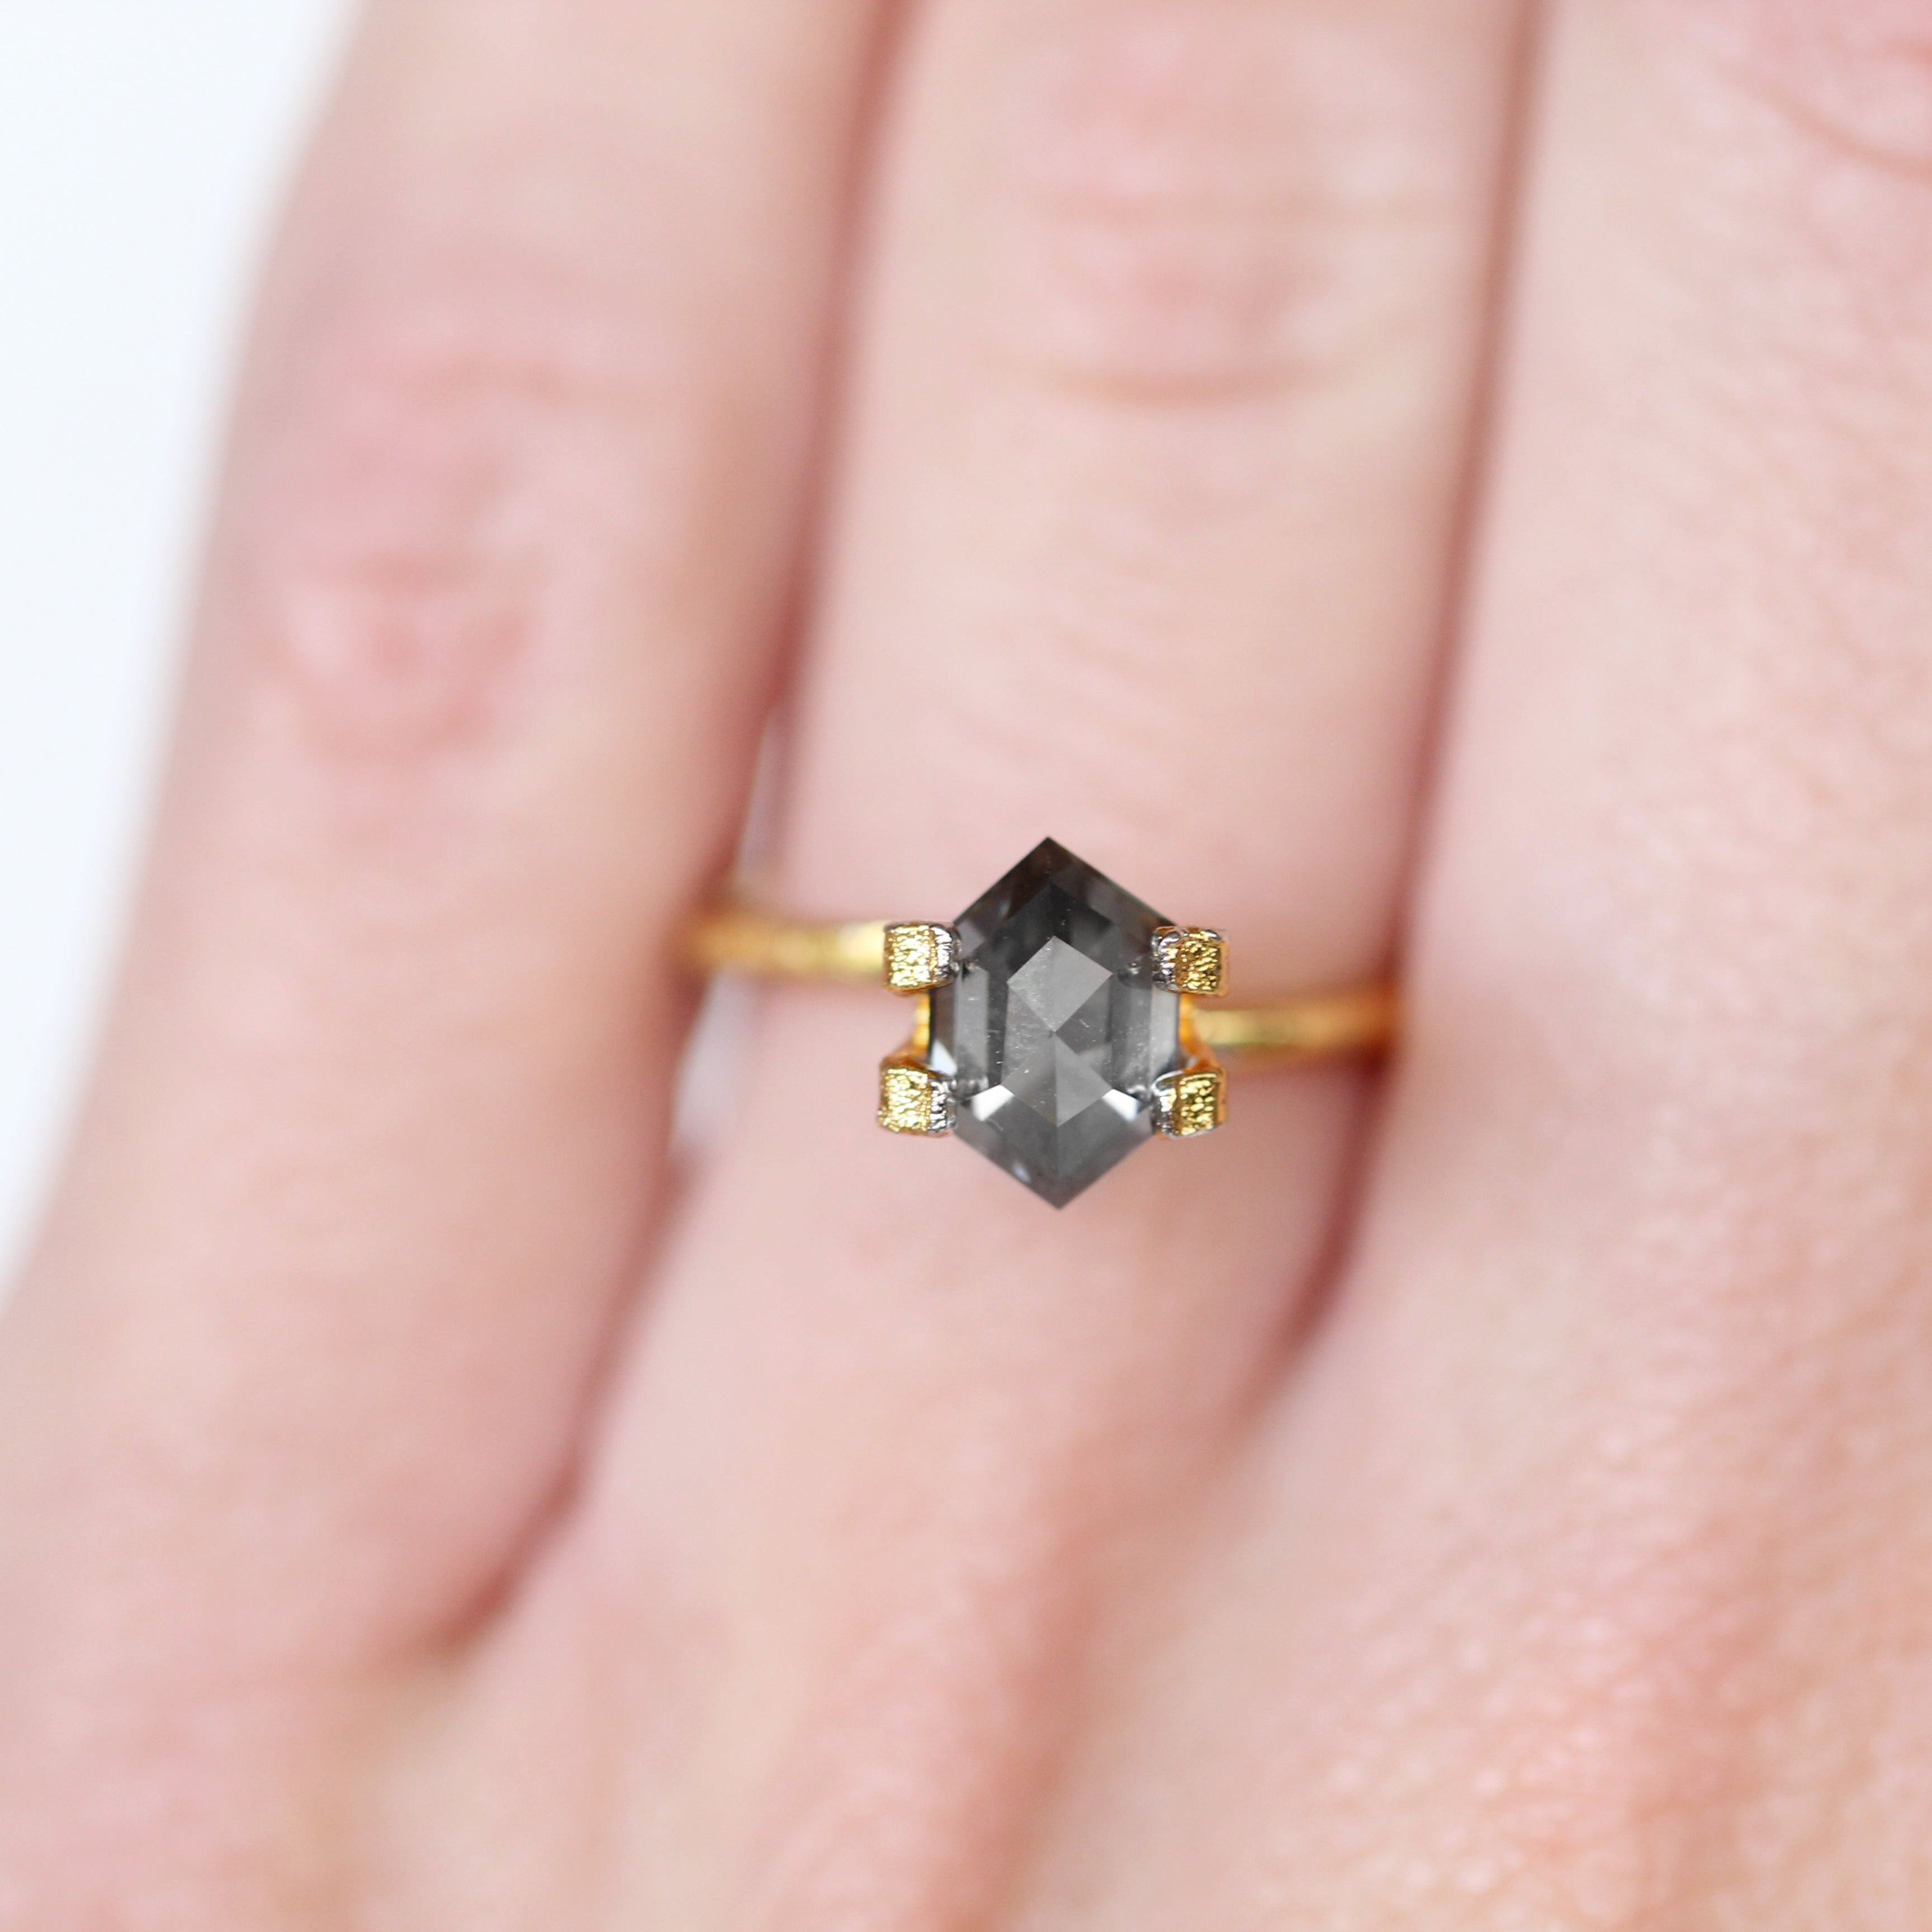 1.15 Carat Hexagon Moissanite - Inventory Code HXMOI115 - Celestial Diamonds ® by Midwinter Co.